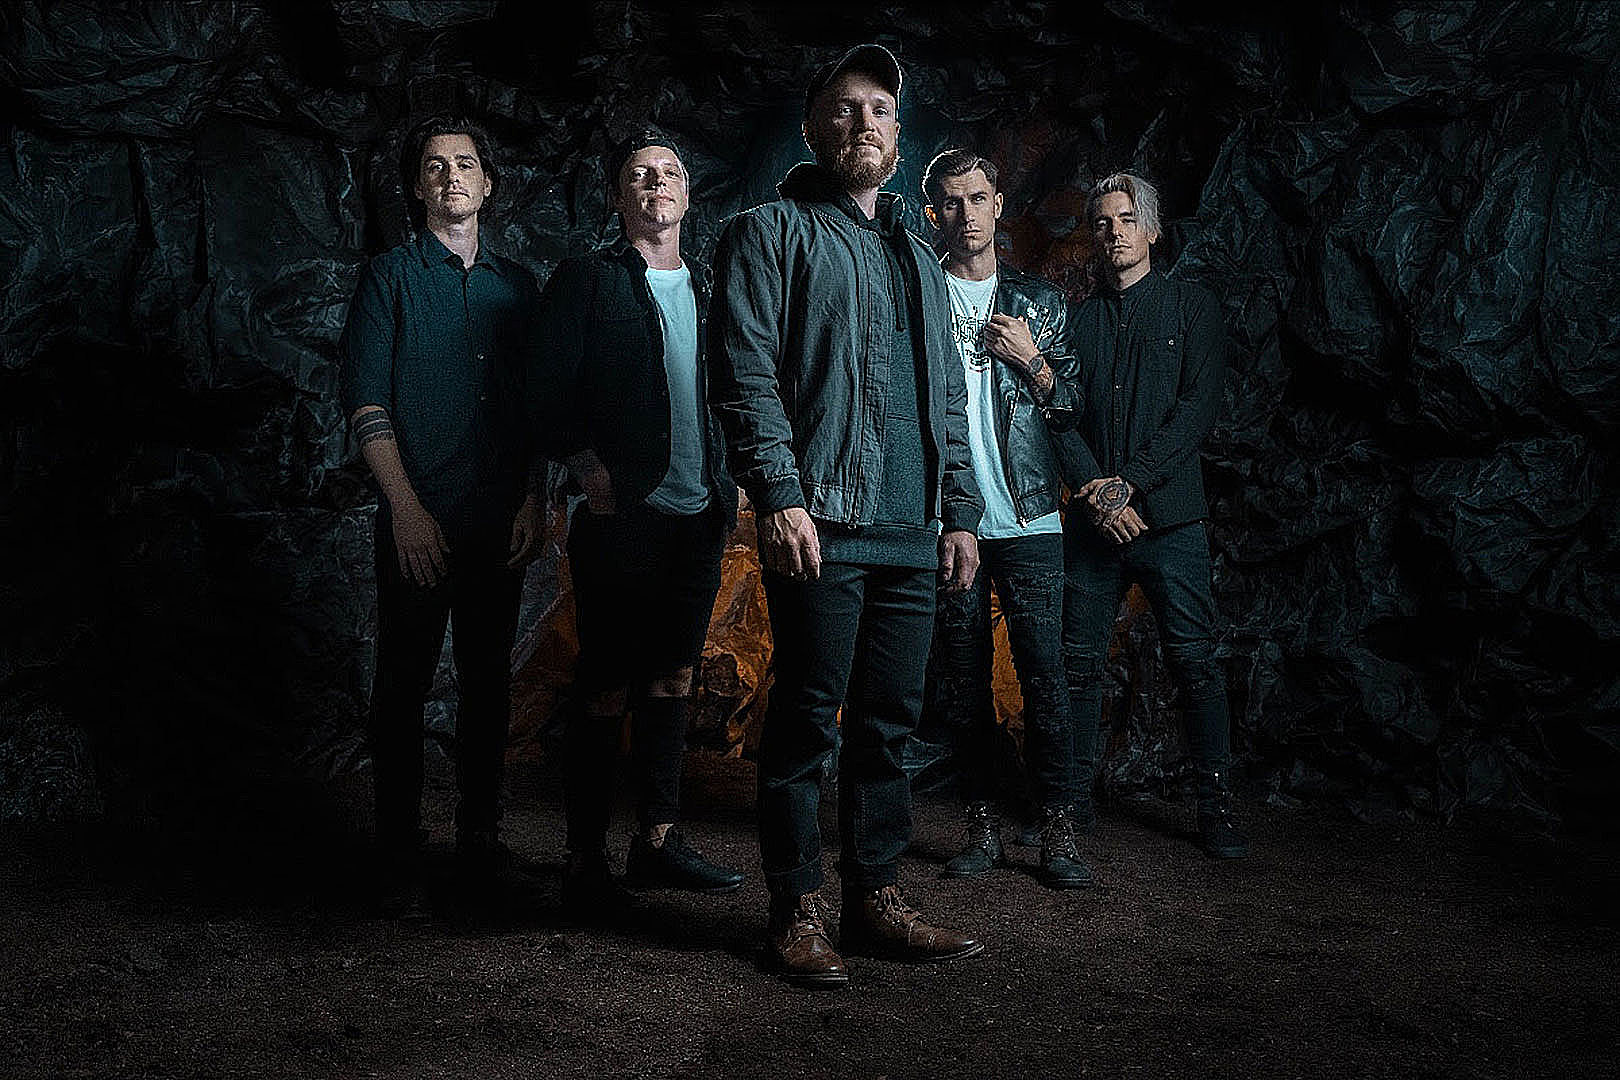 We Came as Romans Reschedule 'To Plant a Seed' Tour Dates